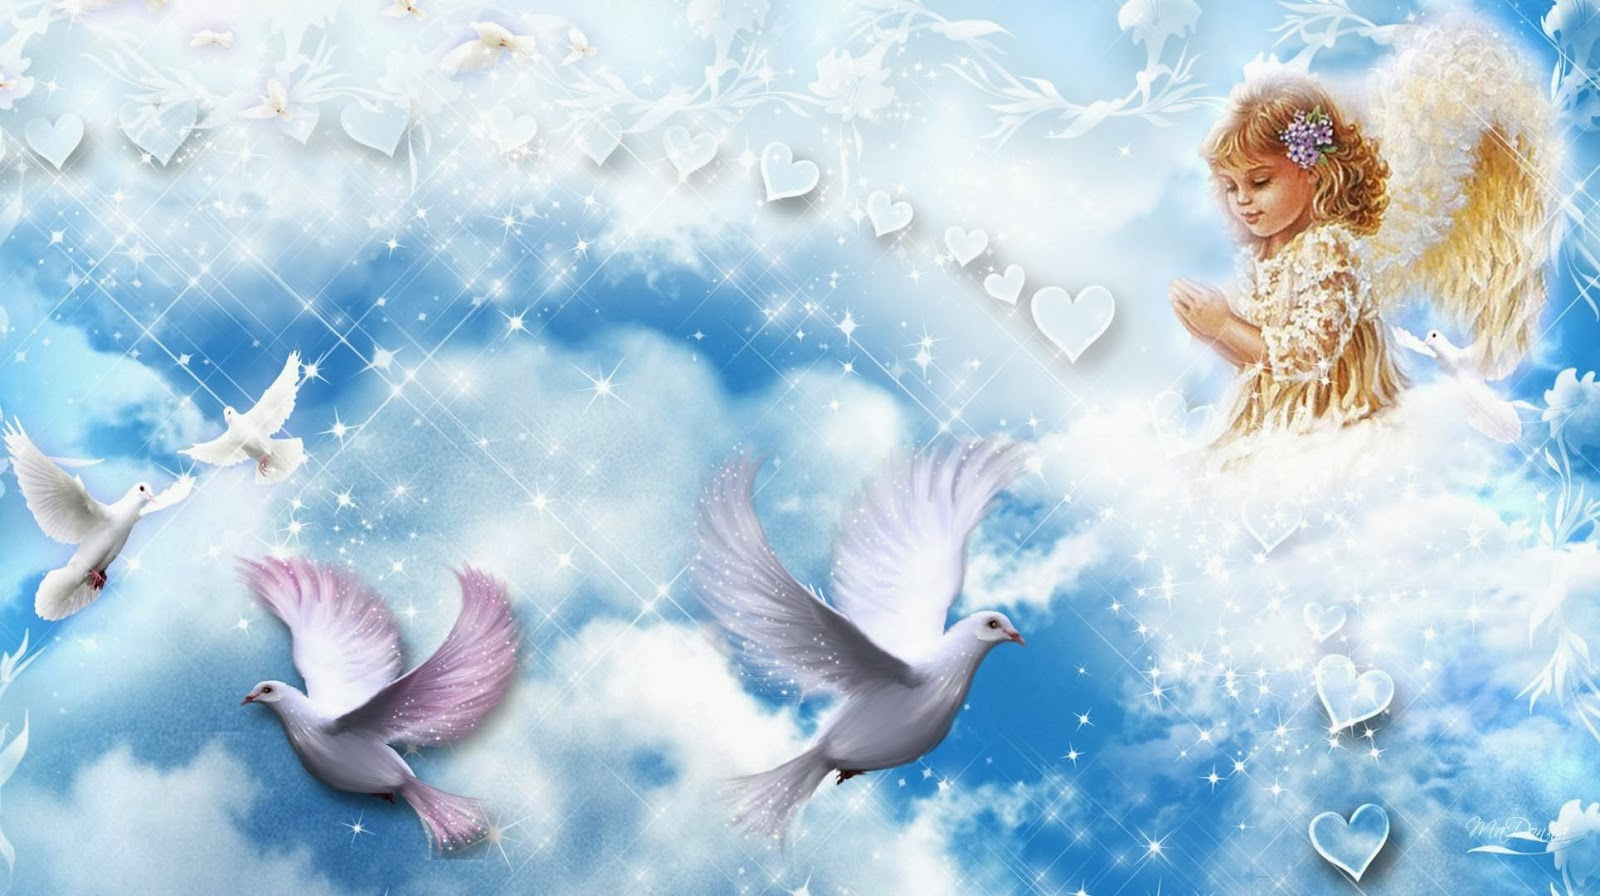 77 angel background wallpaper Pictures